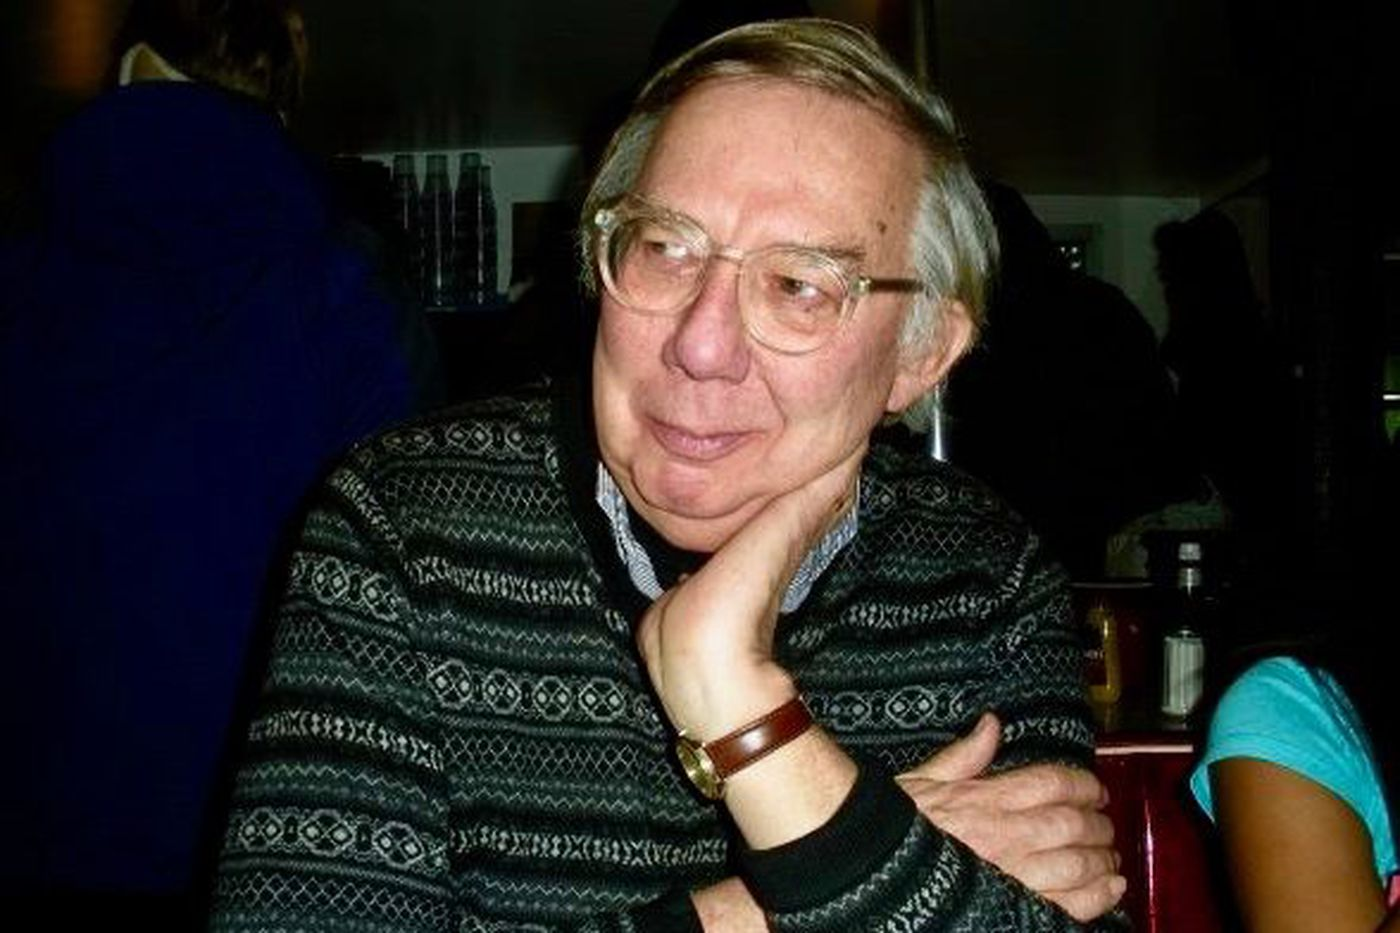 Mark Wagenveld, 73, former Inquirer editor and West Phila. civic activist